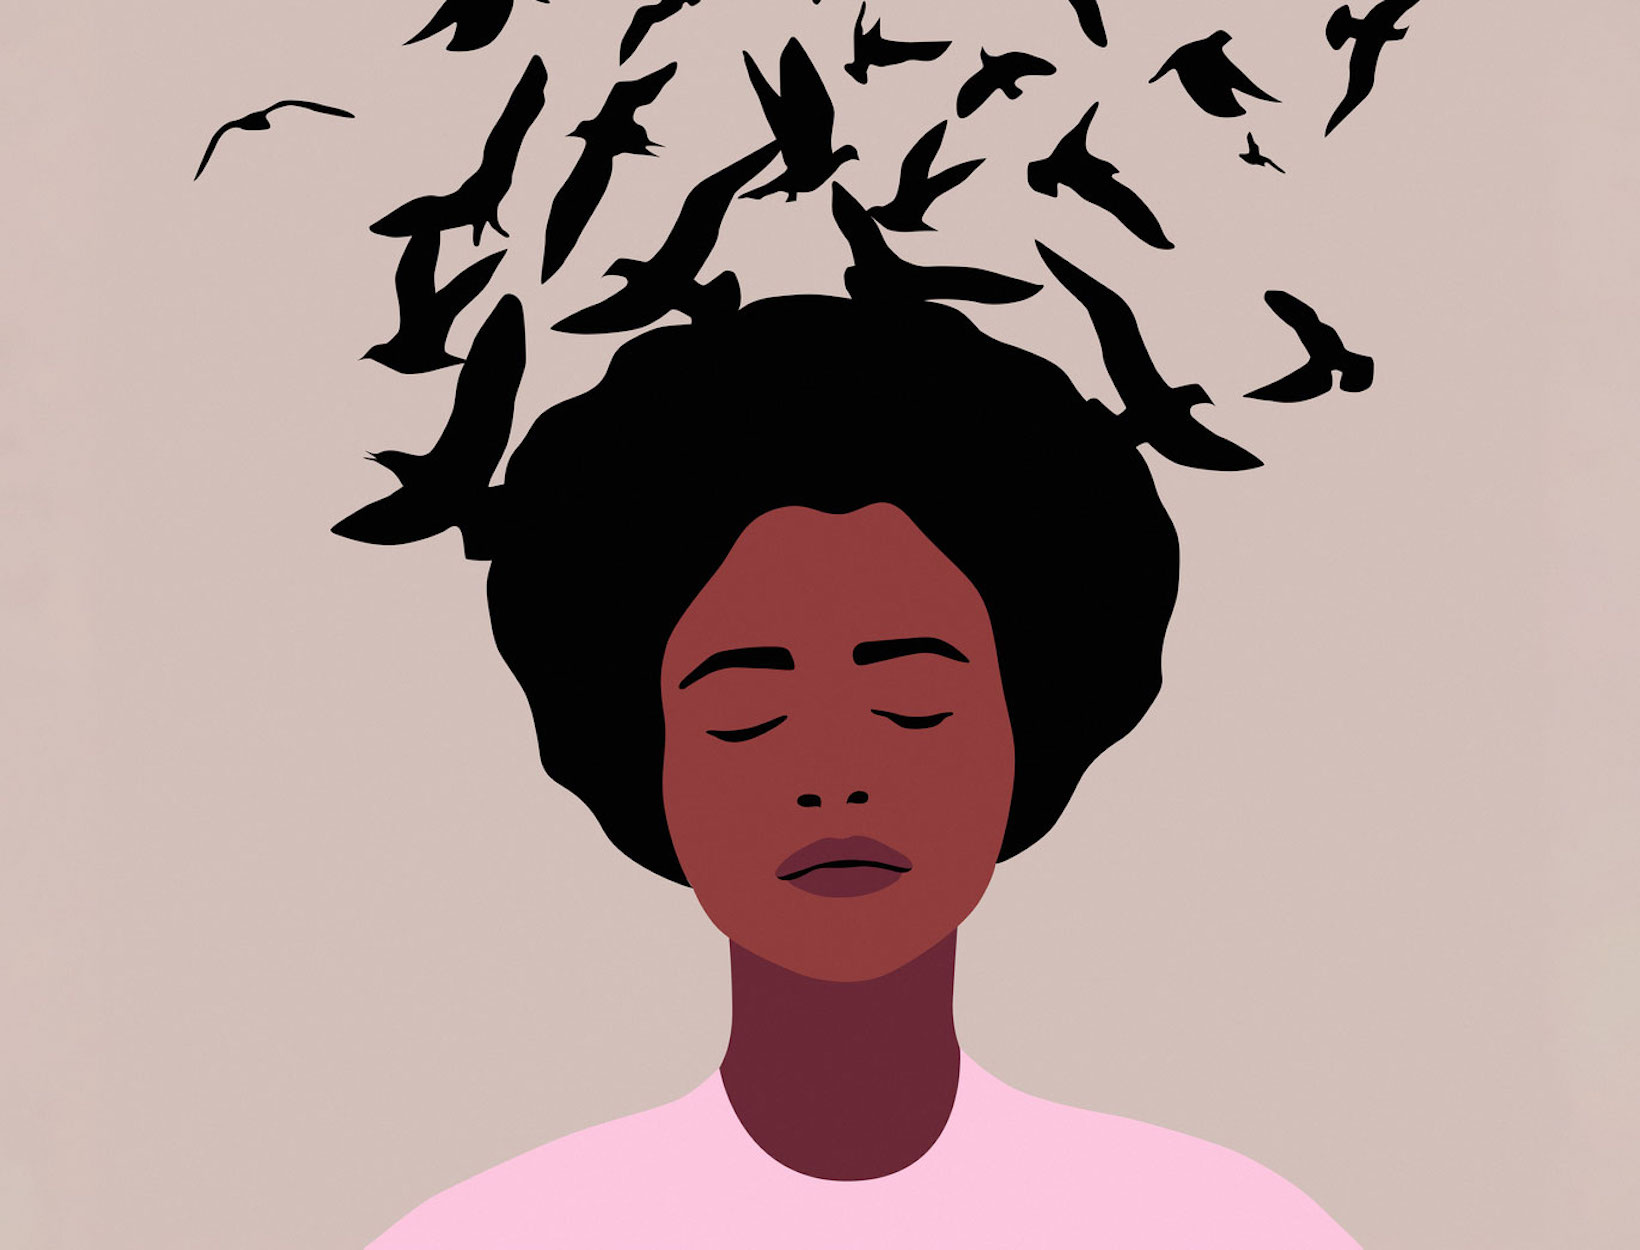 Illustration of a Black woman with birds behind her